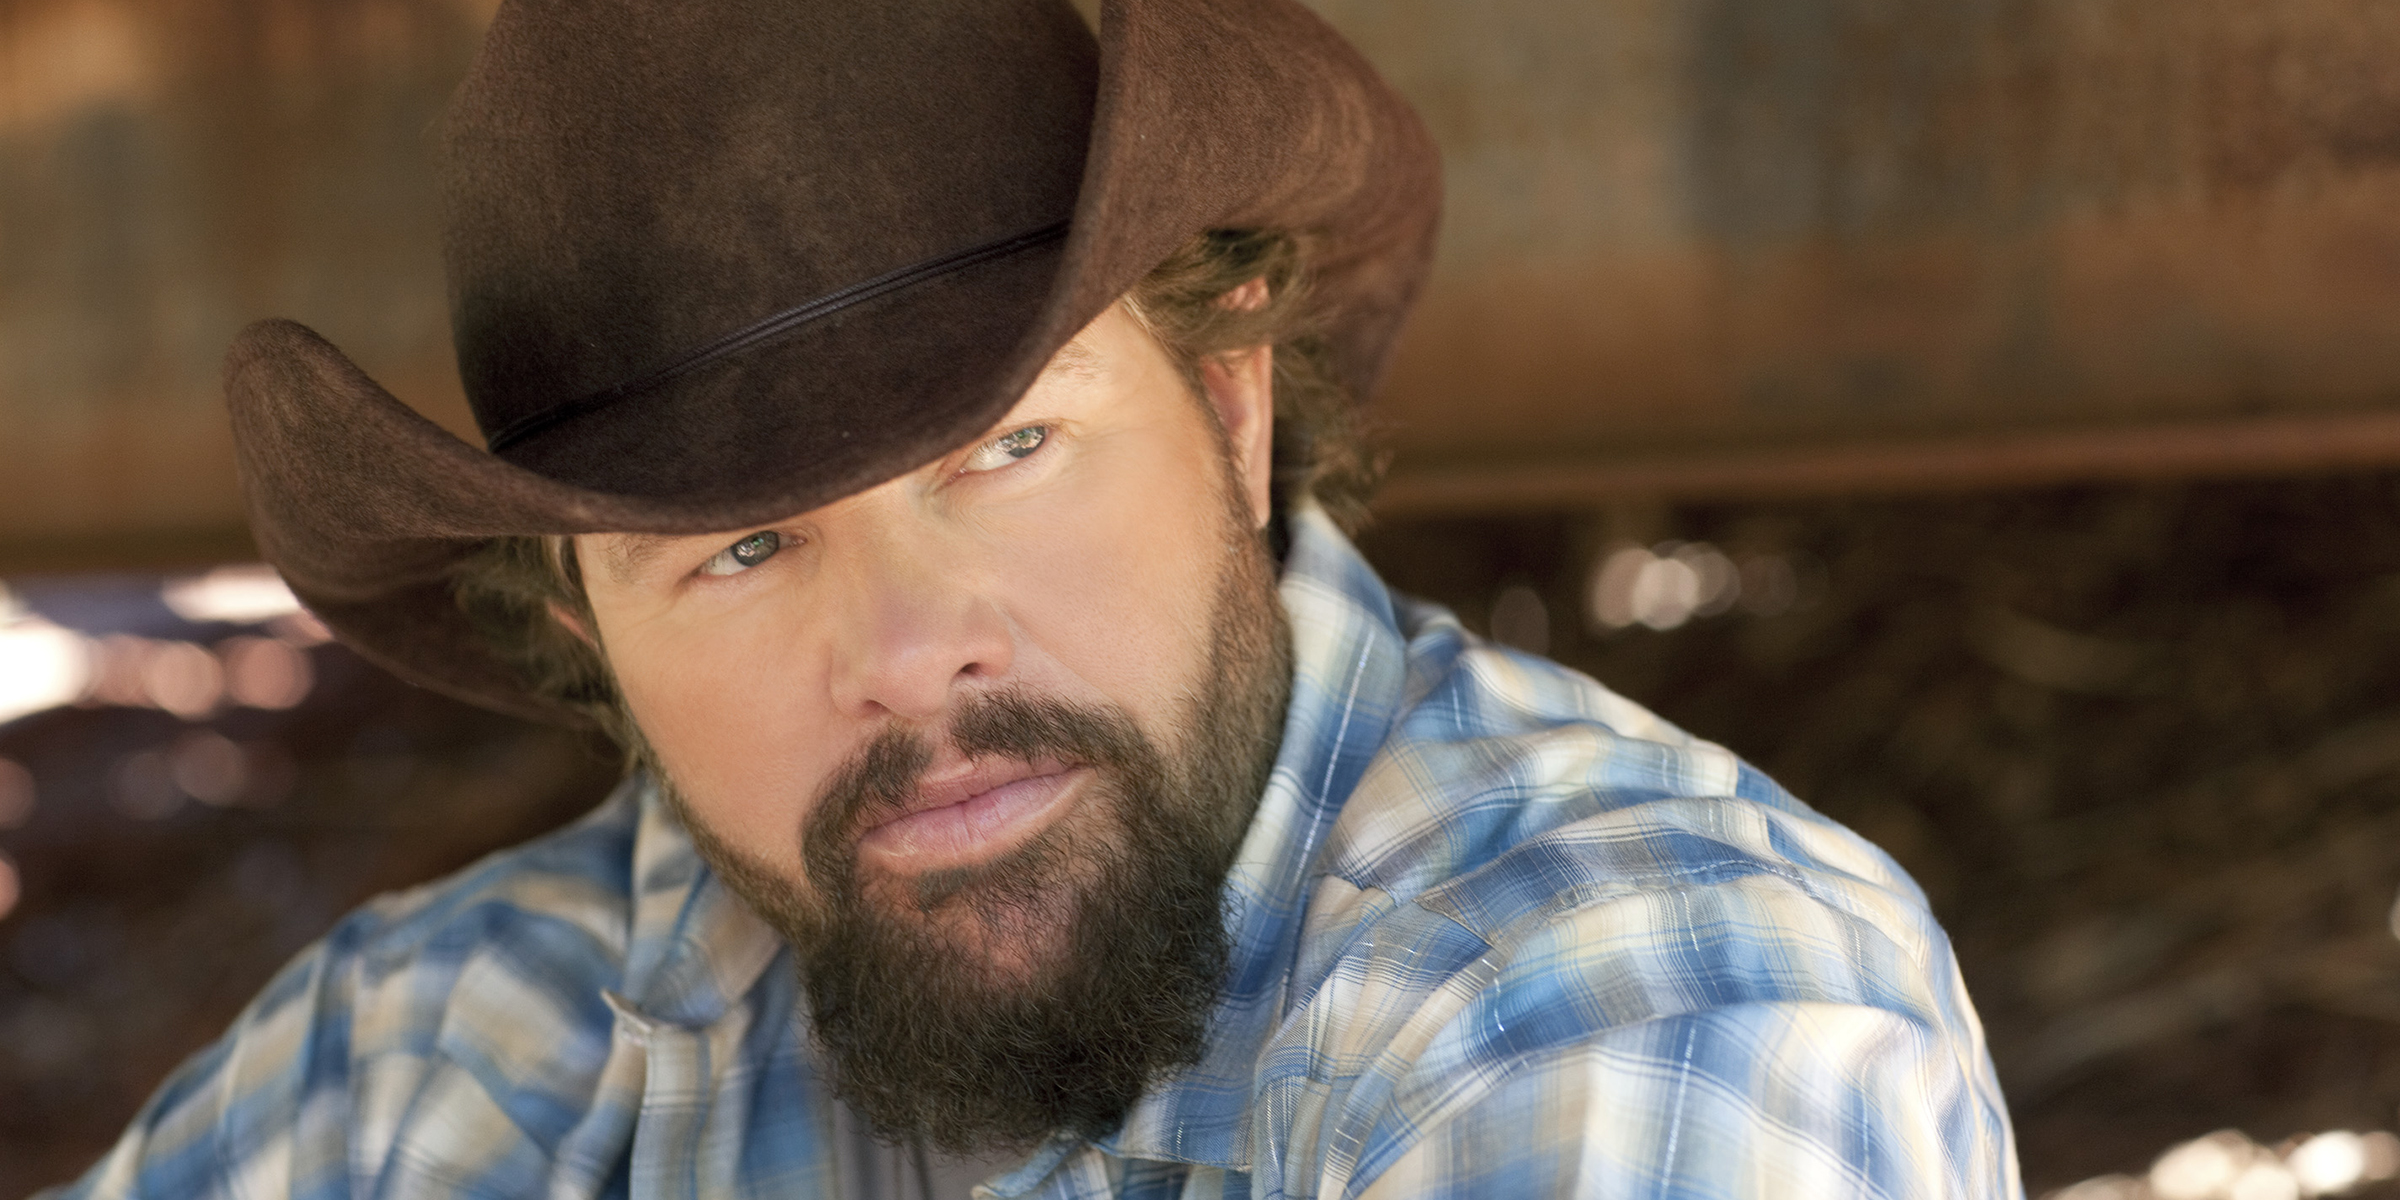 Toby Keith Today Show 2019 Summer concert: What you need to know